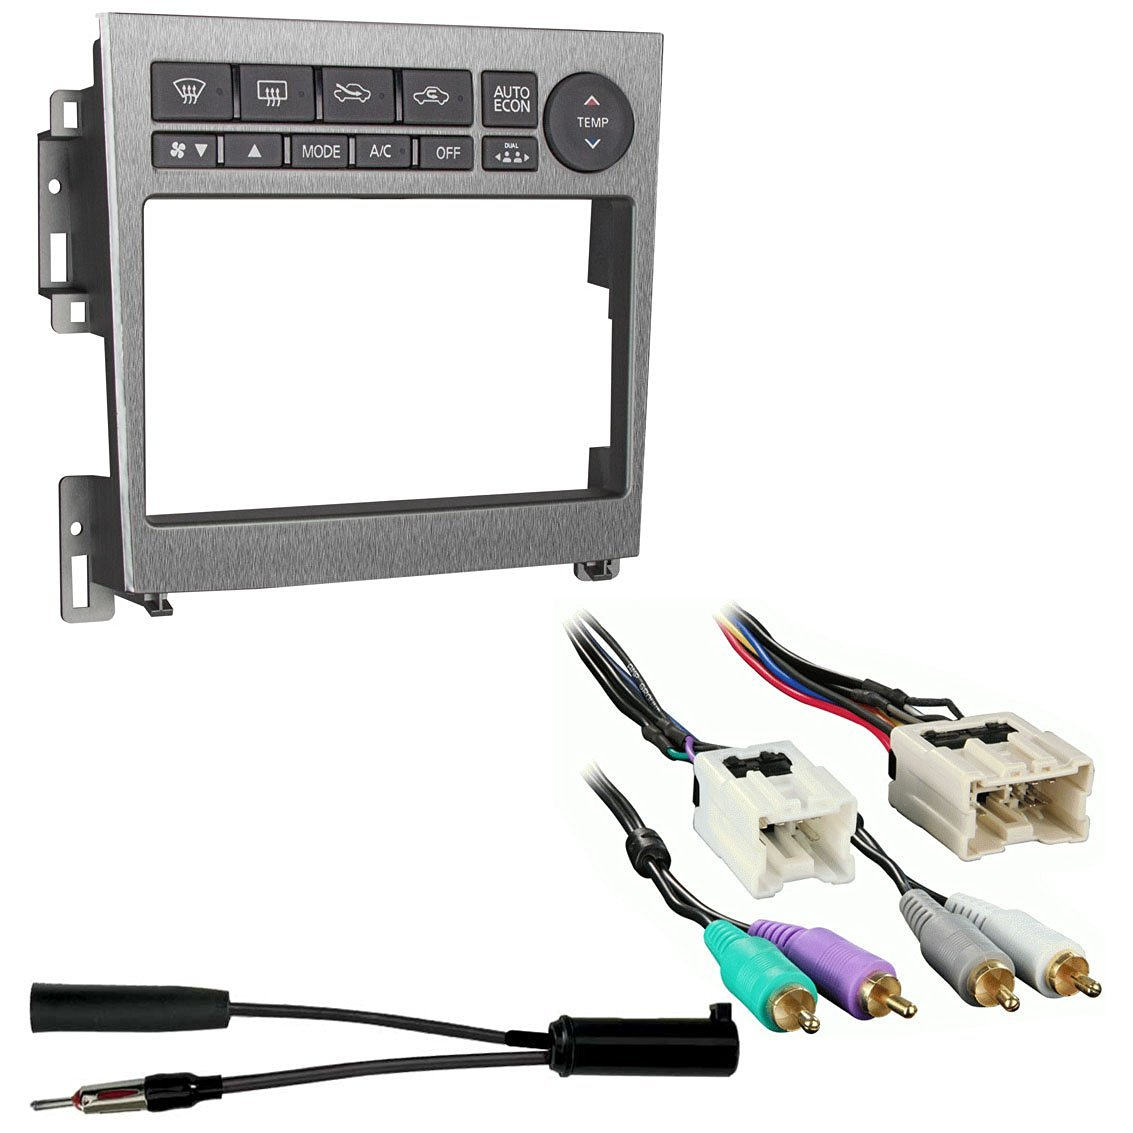 Buy Dl Auto Dash Kit Infiniti G35 2005 2006 Full W Automatic Wiring Harness Metra 95 7605a Double Din Stereo Installation For 2007 With Antenna Adapter